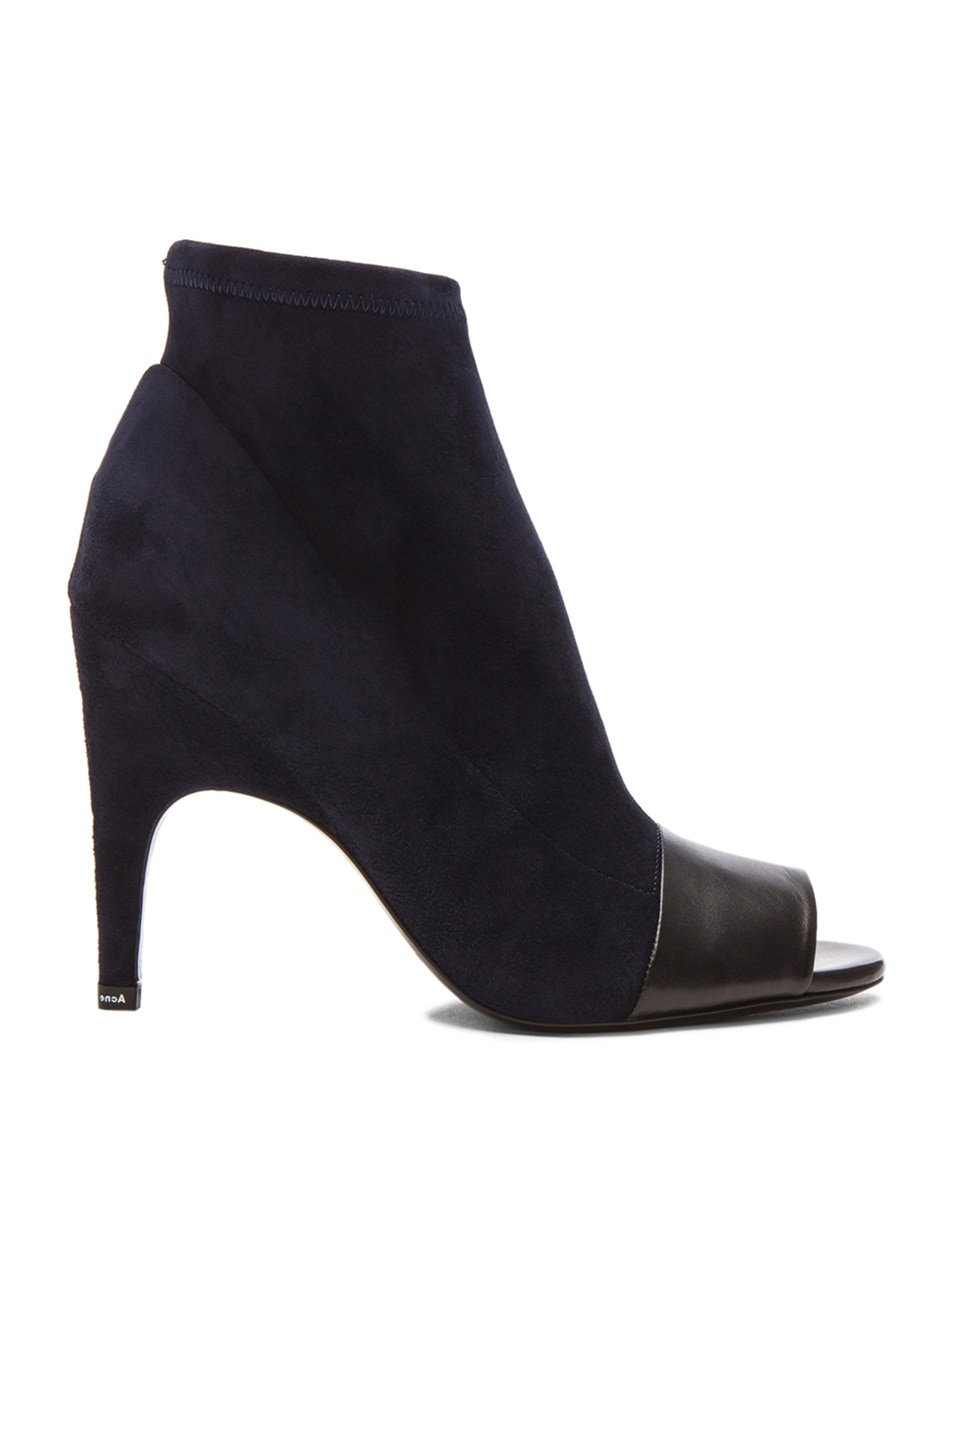 Image 1 of Acne Studios Vova Stretch Suede Booties in Navy